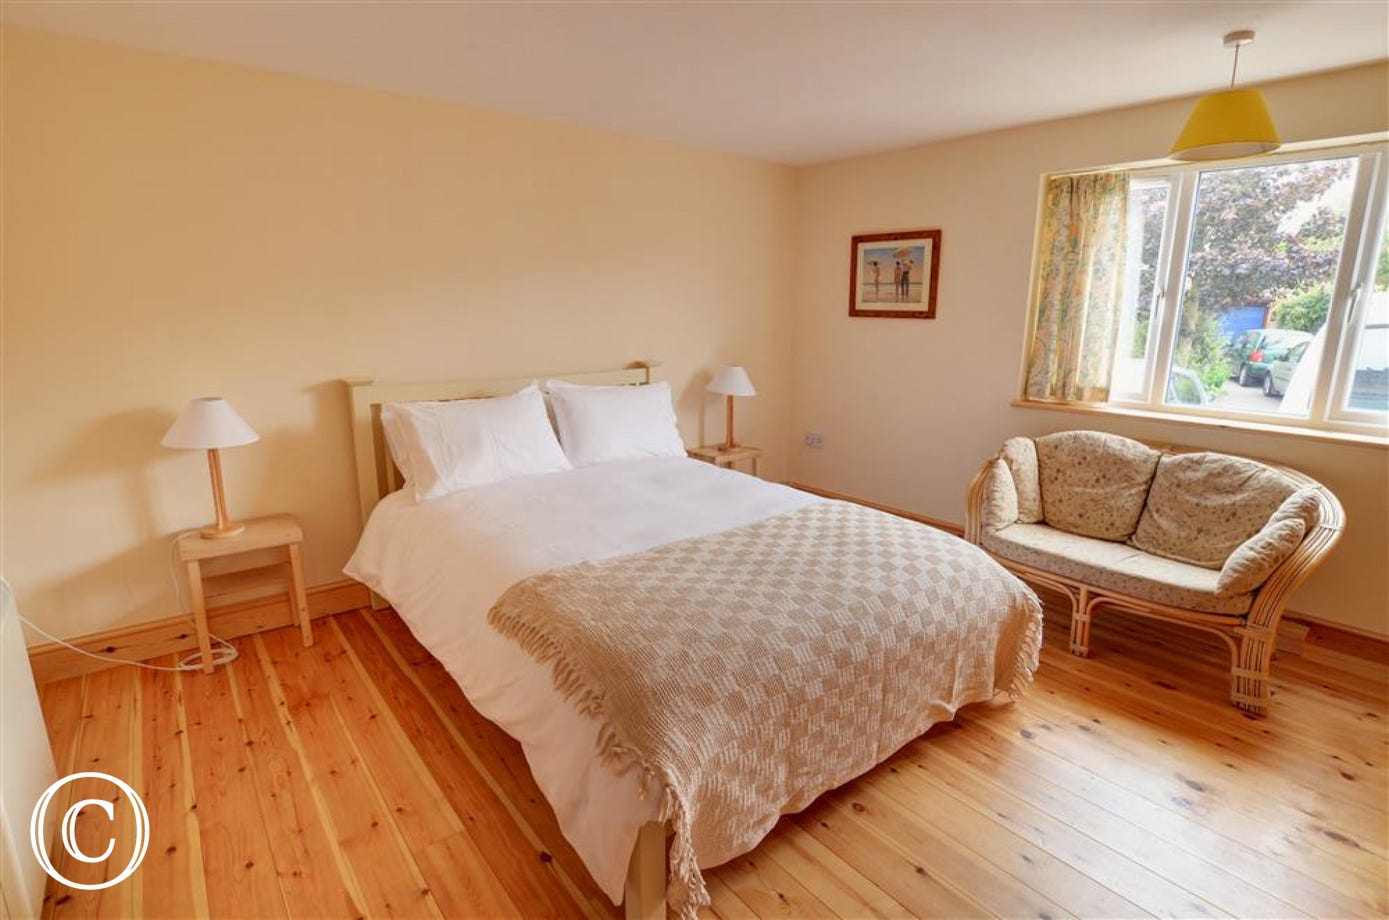 Light and airy bedroom with double bed